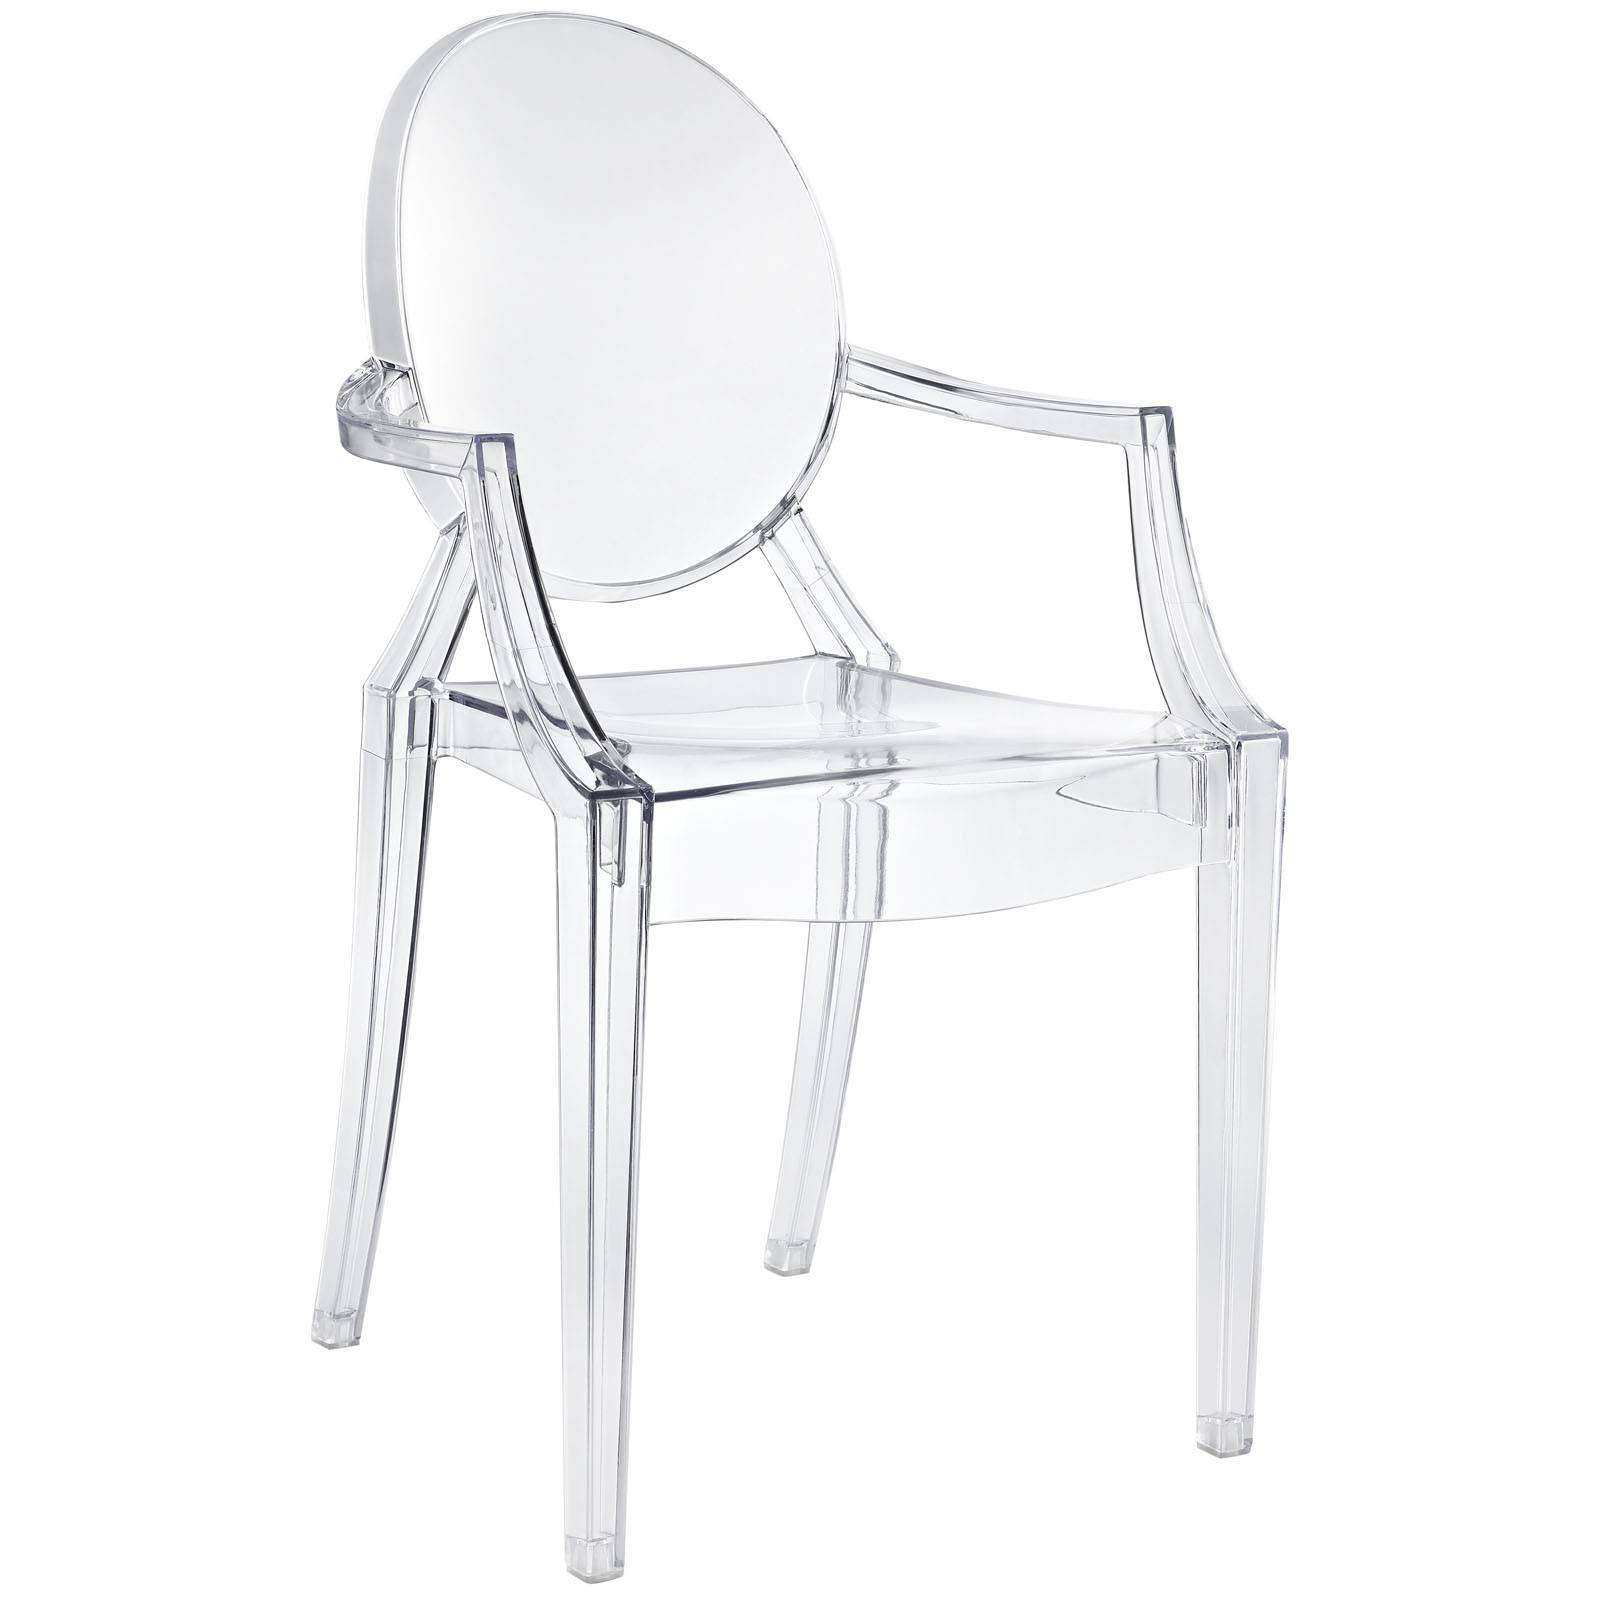 philippe starck ghost chair the wooden stevens point wi style louis arm